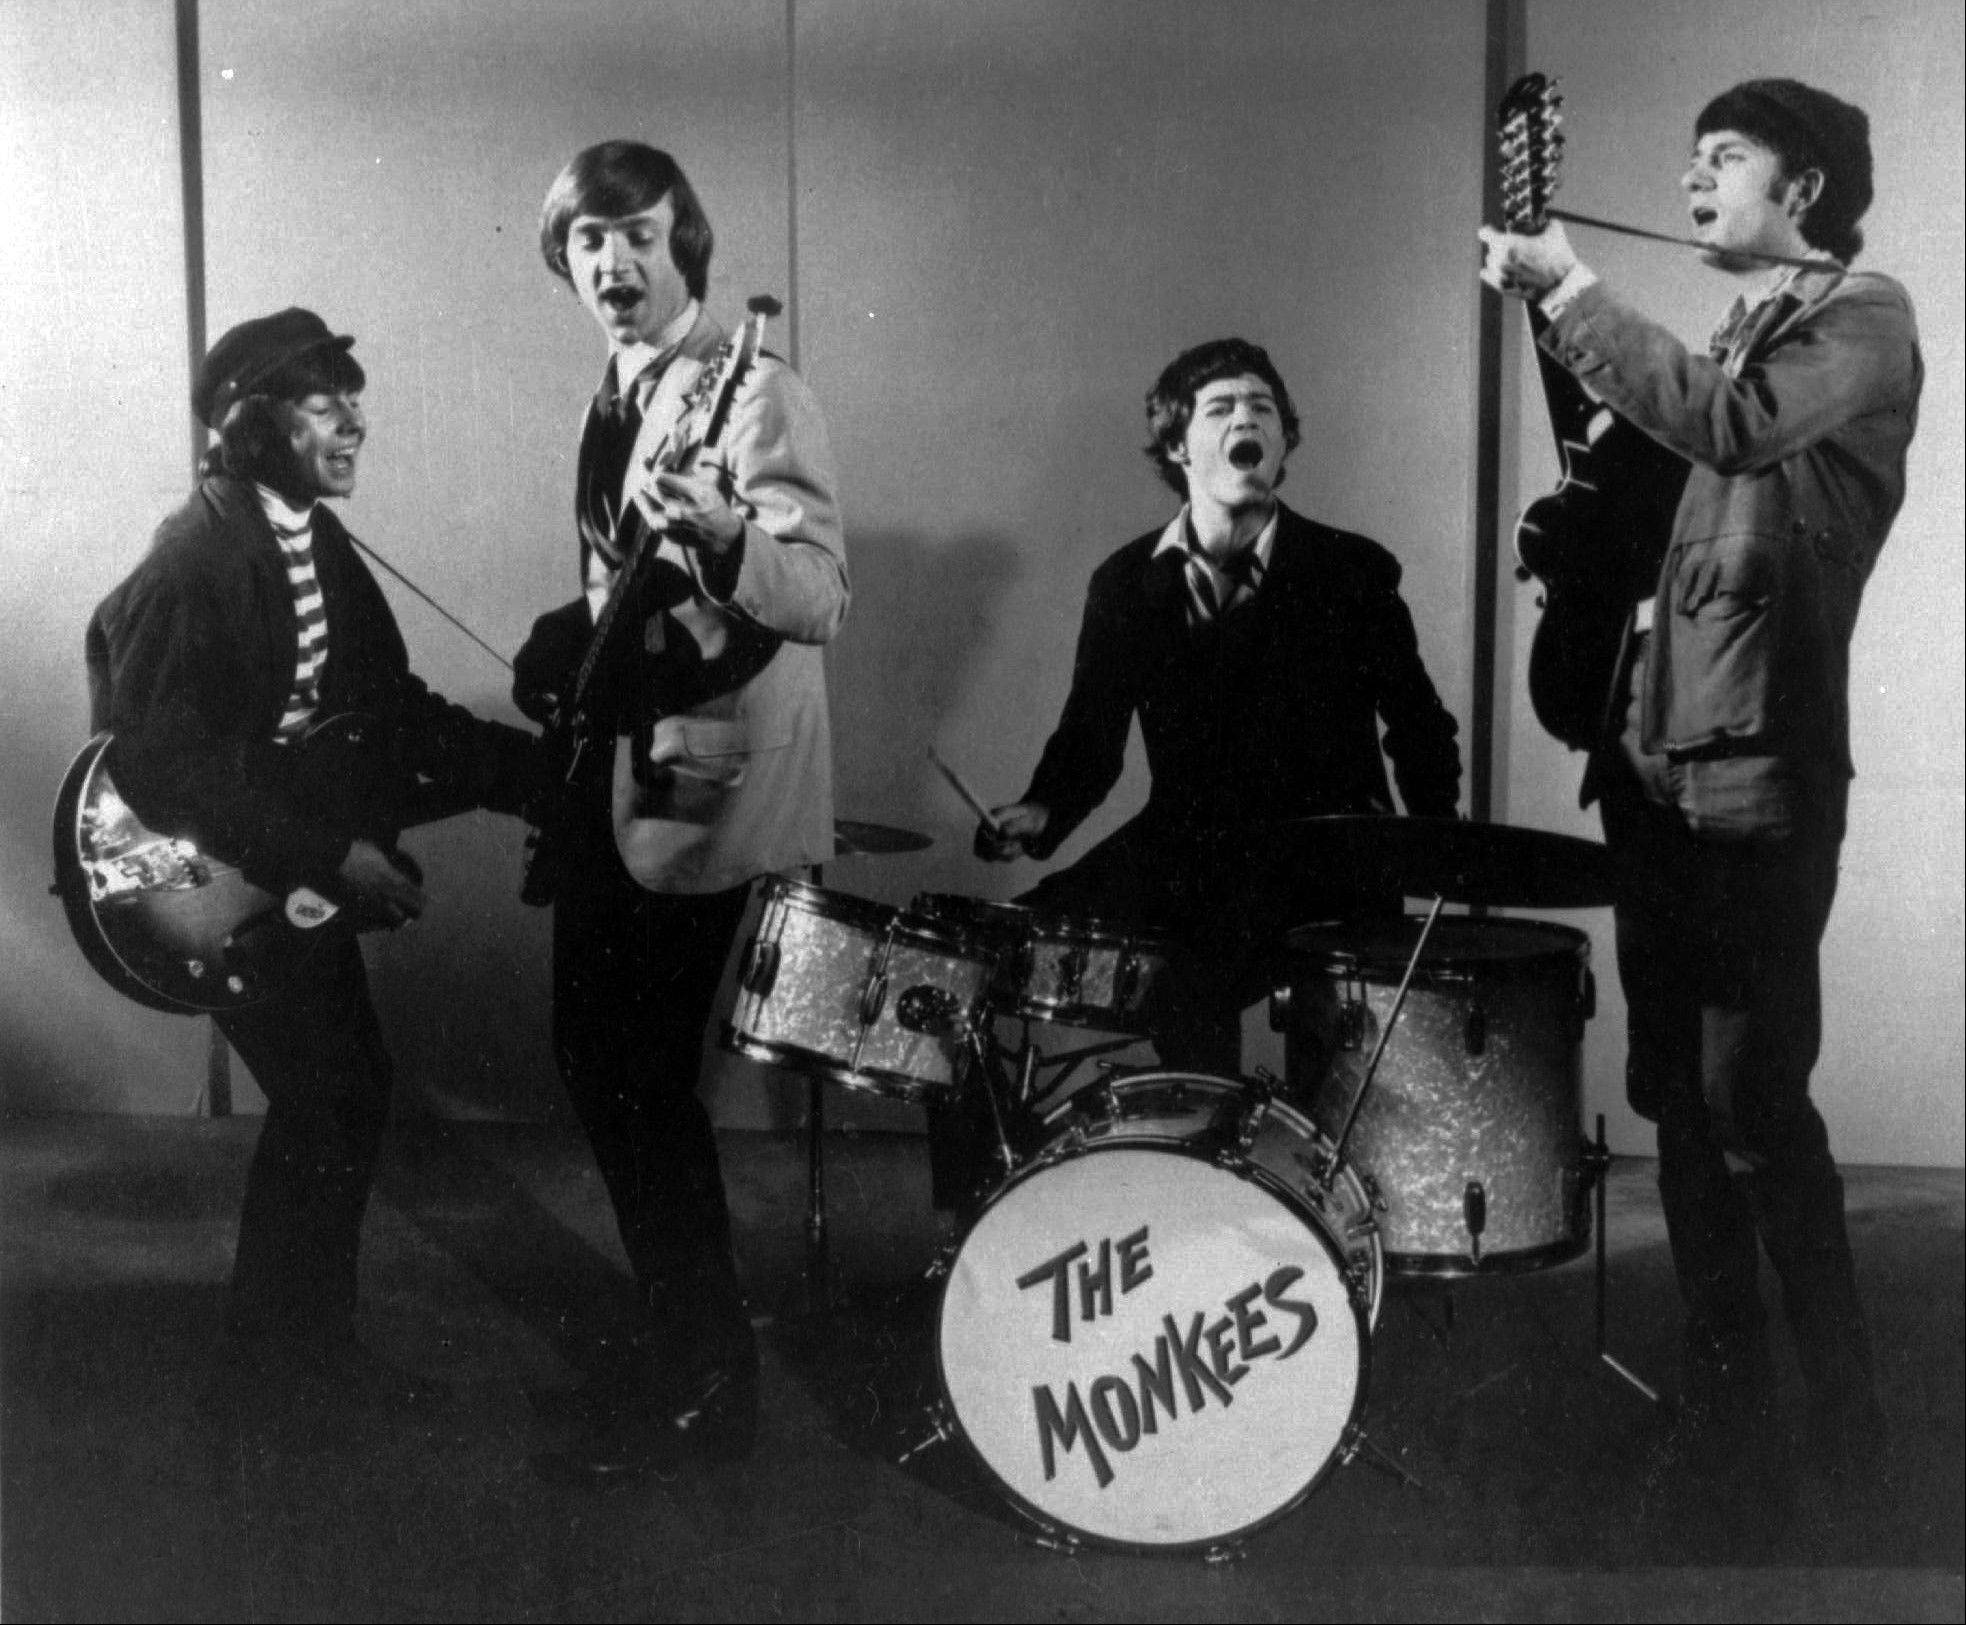 This 1966 photo shows The Monkees, singing group. Shown from left, are, Davy Jones, Peter Tork, Micky Dolenz and Mike Nesmith.